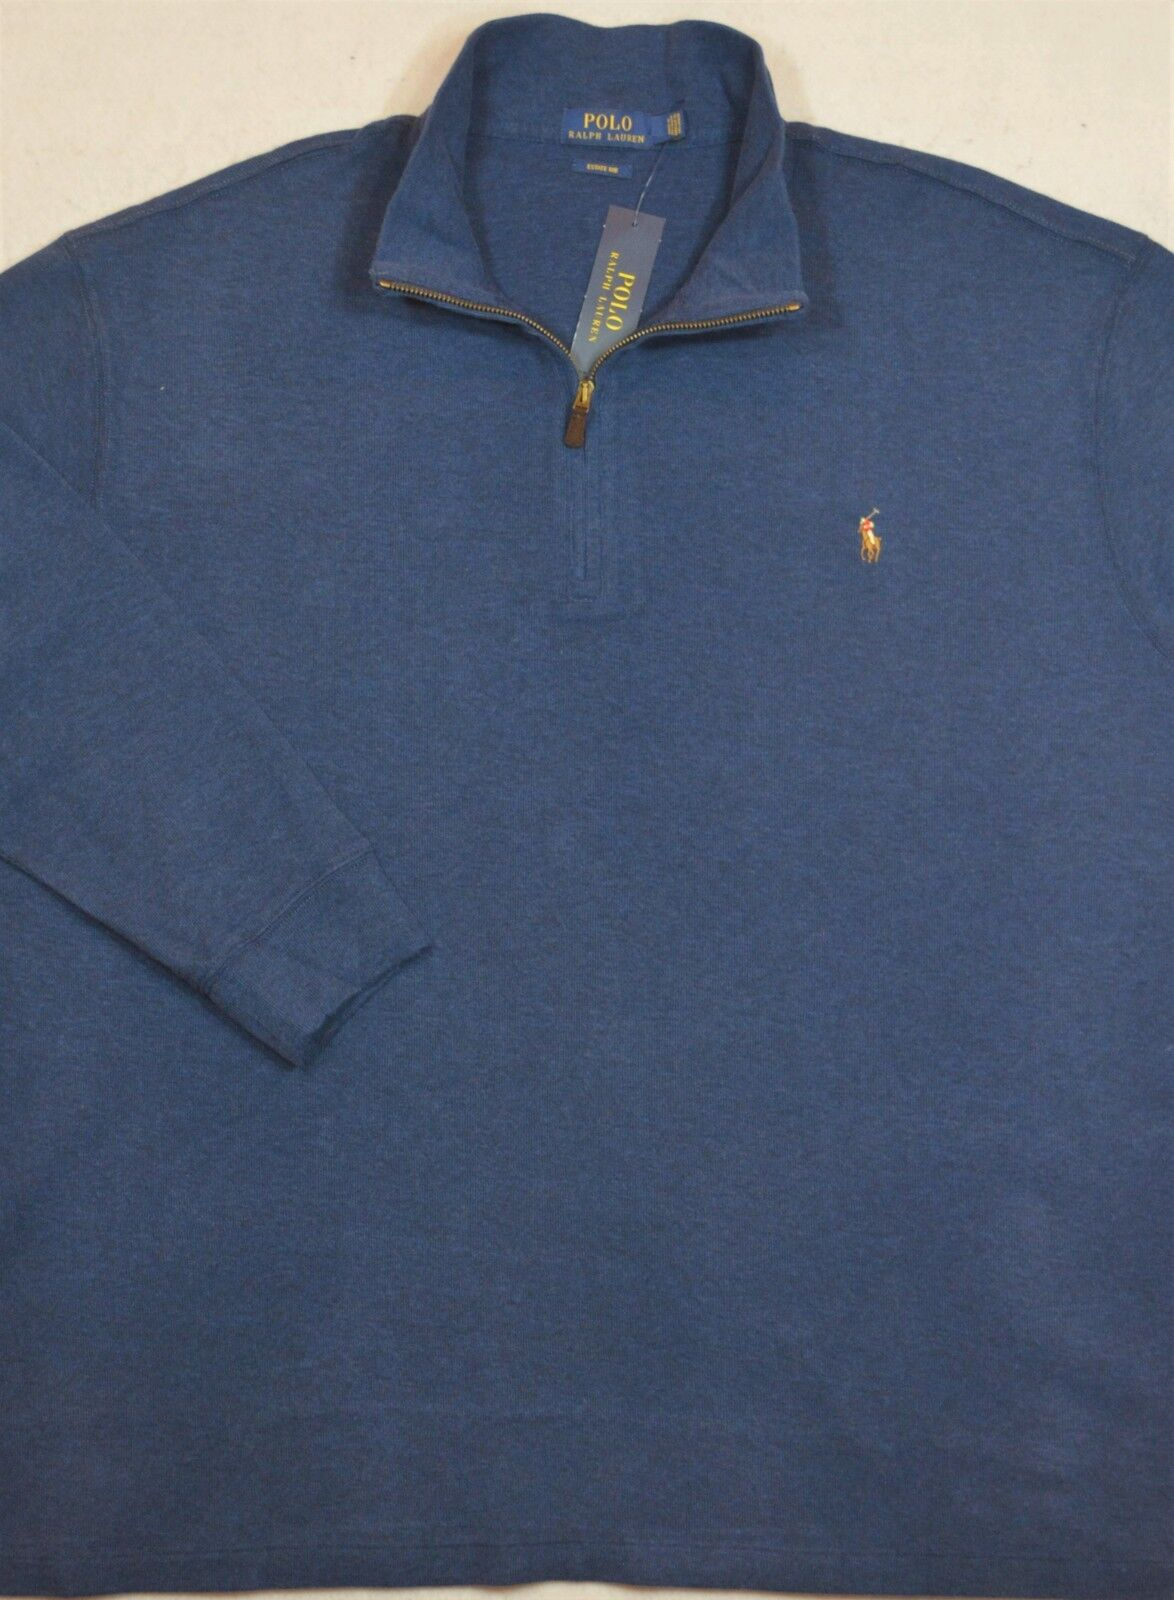 Polo Ralph Lauren Estate Rib Sweater Pullover Blau Half-Zip 3XB 3XLT NWT